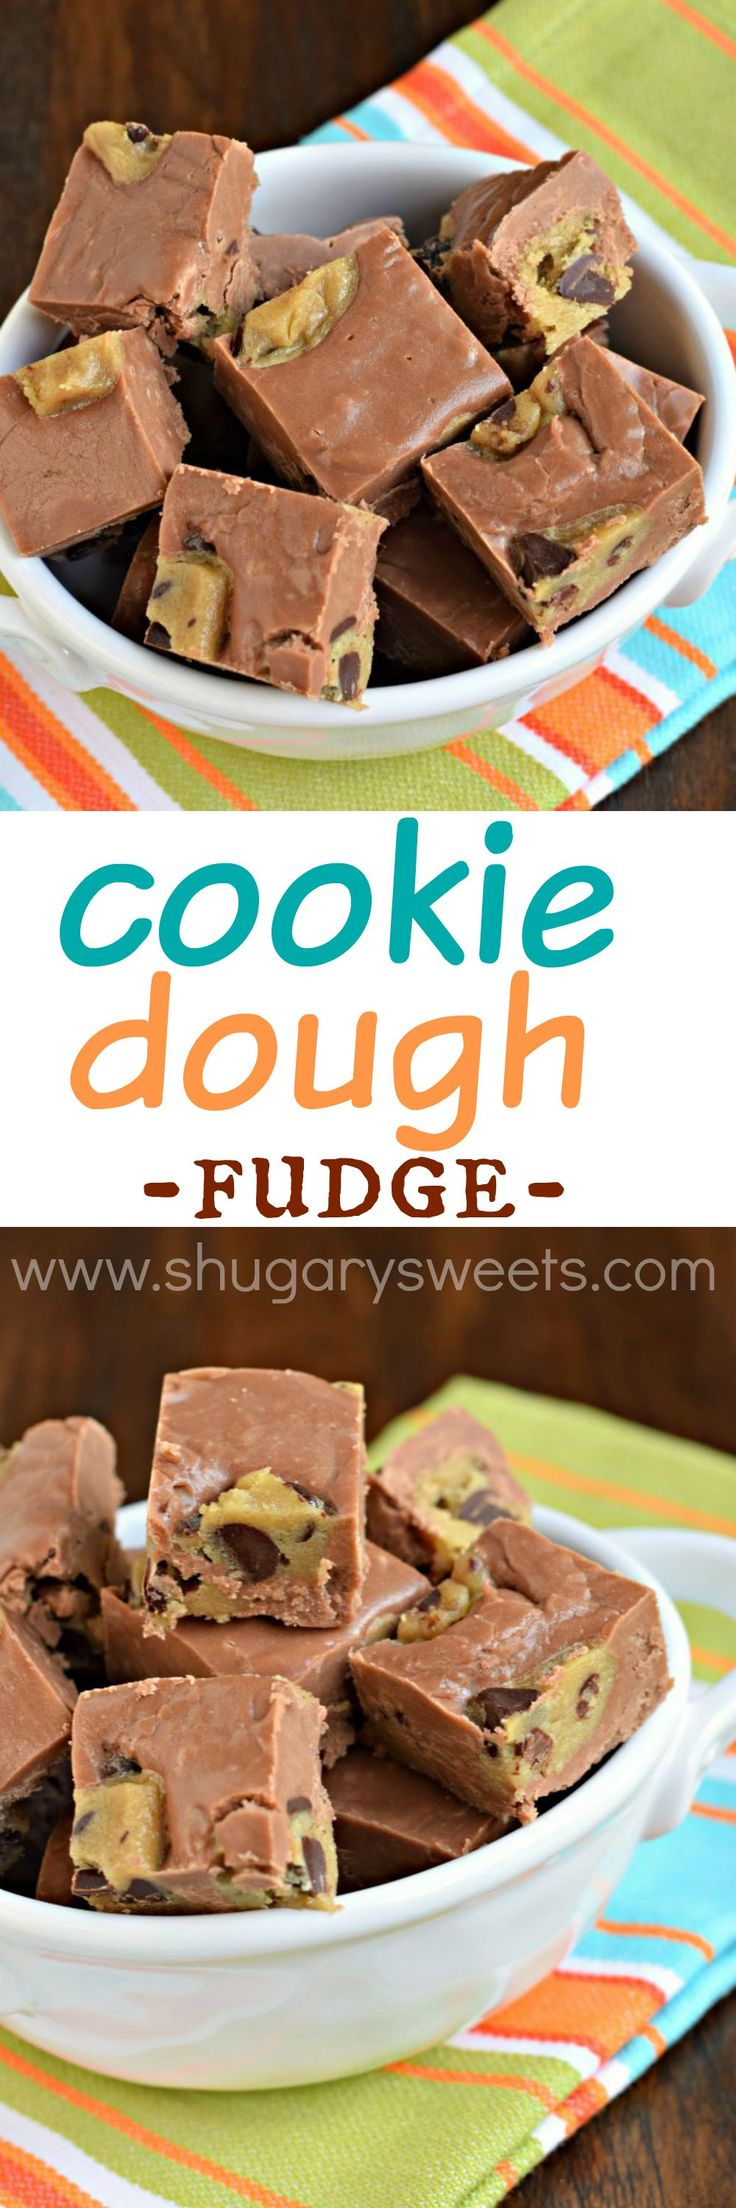 This Chocolate Cookie Dough Fudge is easy to make thanks to a roll of refrigerated cookie dough. One bite of perfection coming right up!